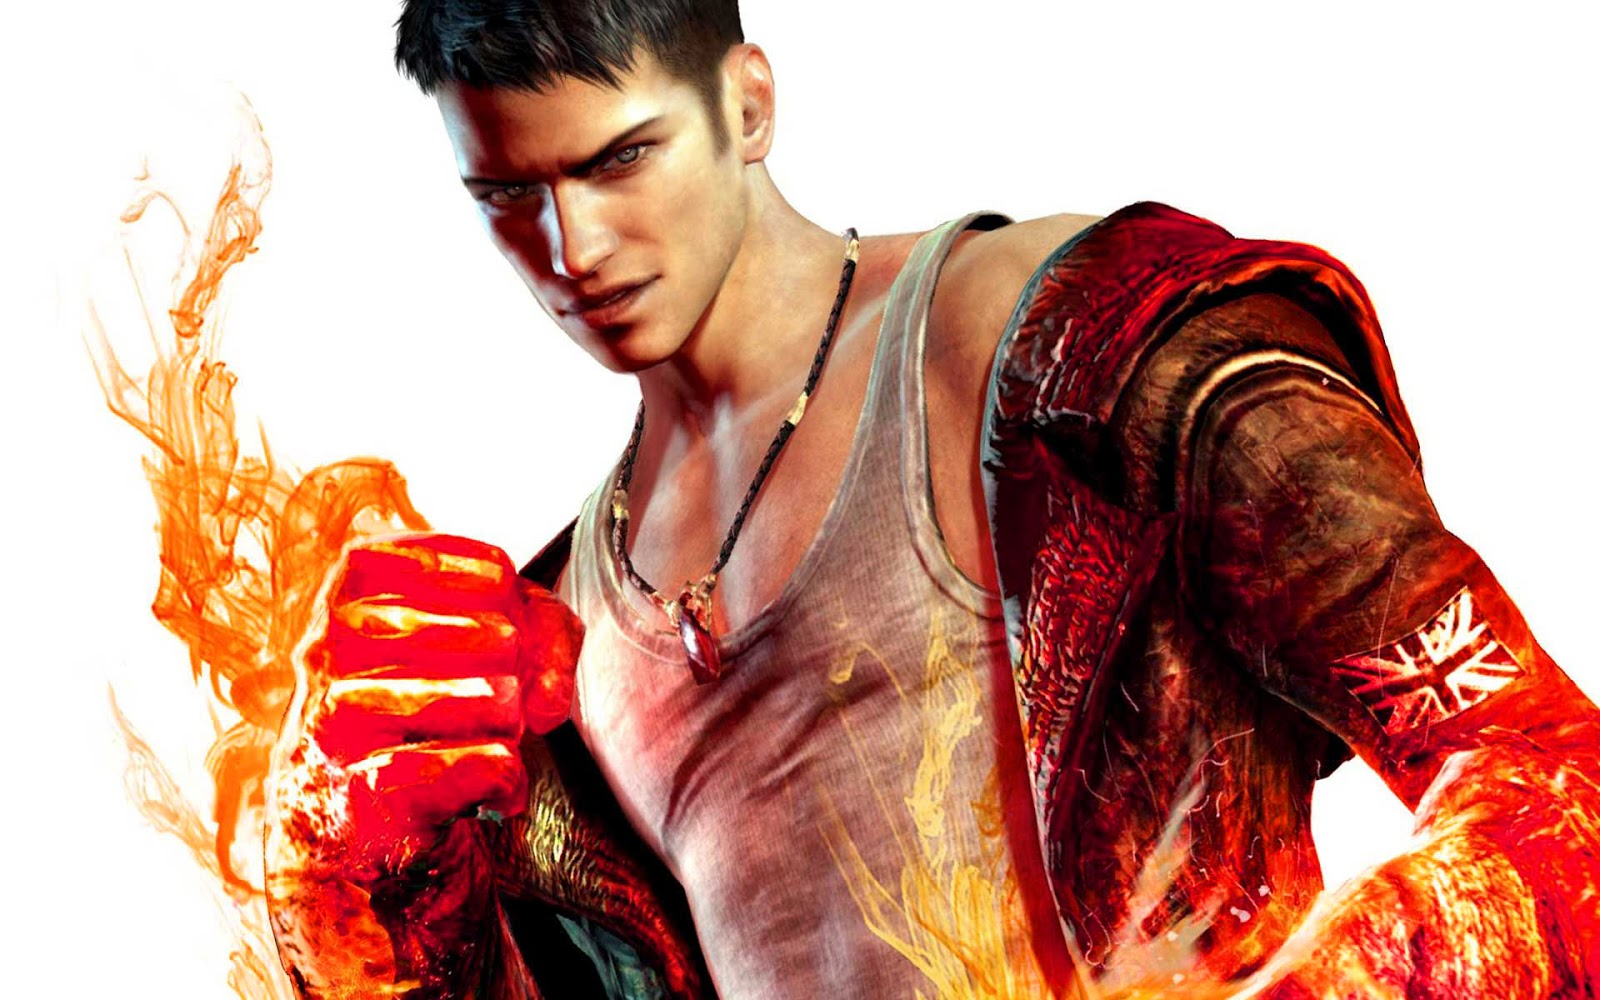 http://4.bp.blogspot.com/-Ikgl-04FpW4/UUGpyz4ot5I/AAAAAAAAAWM/YwPYcCJWshc/s1600/dmc-devil-may-cry-wallpaper-background.jpg